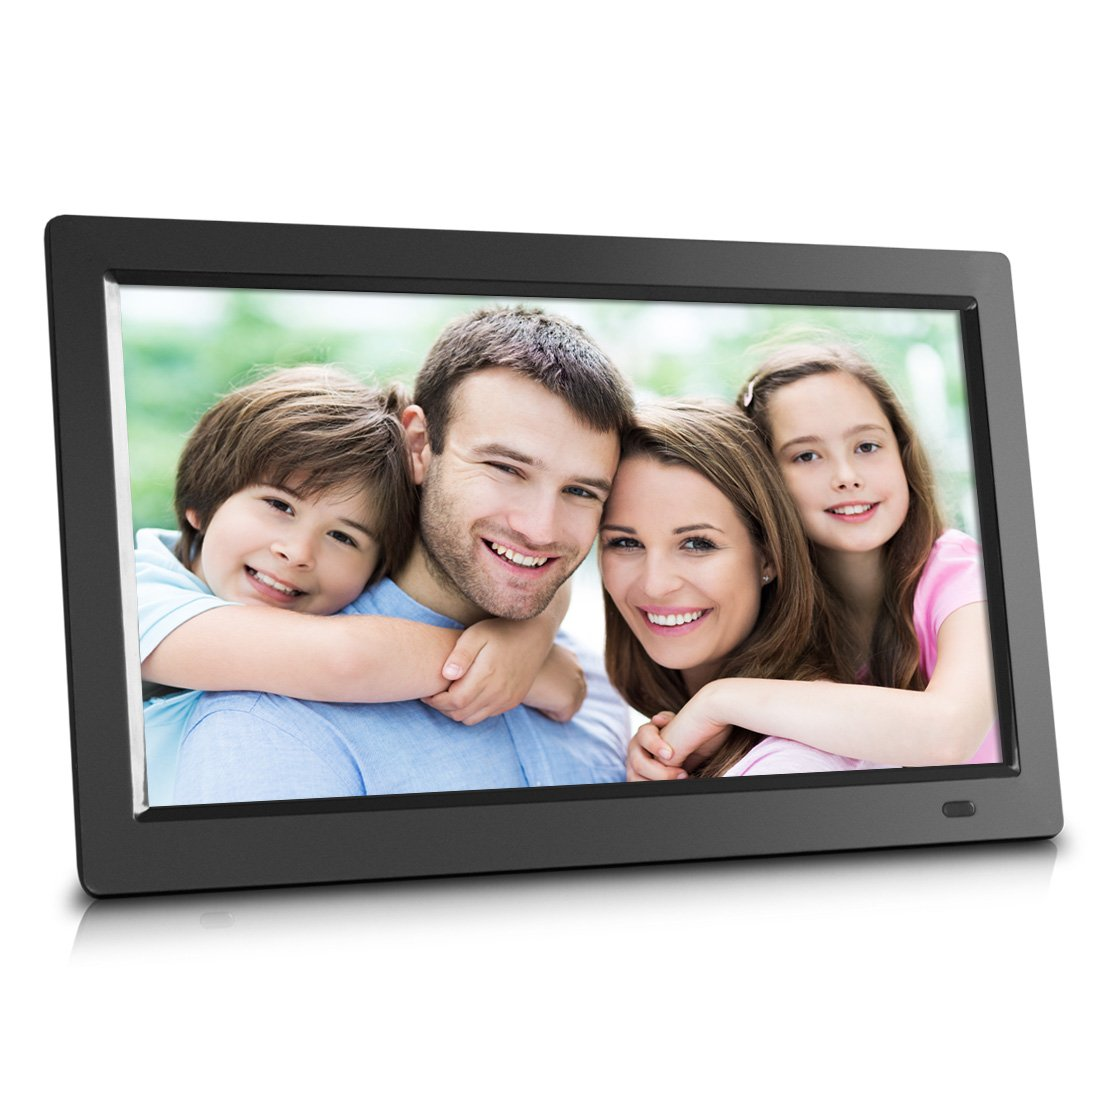 Amazon.com : Sungale 14 Inch WiFi Cloud Digital Photo Frame with ...